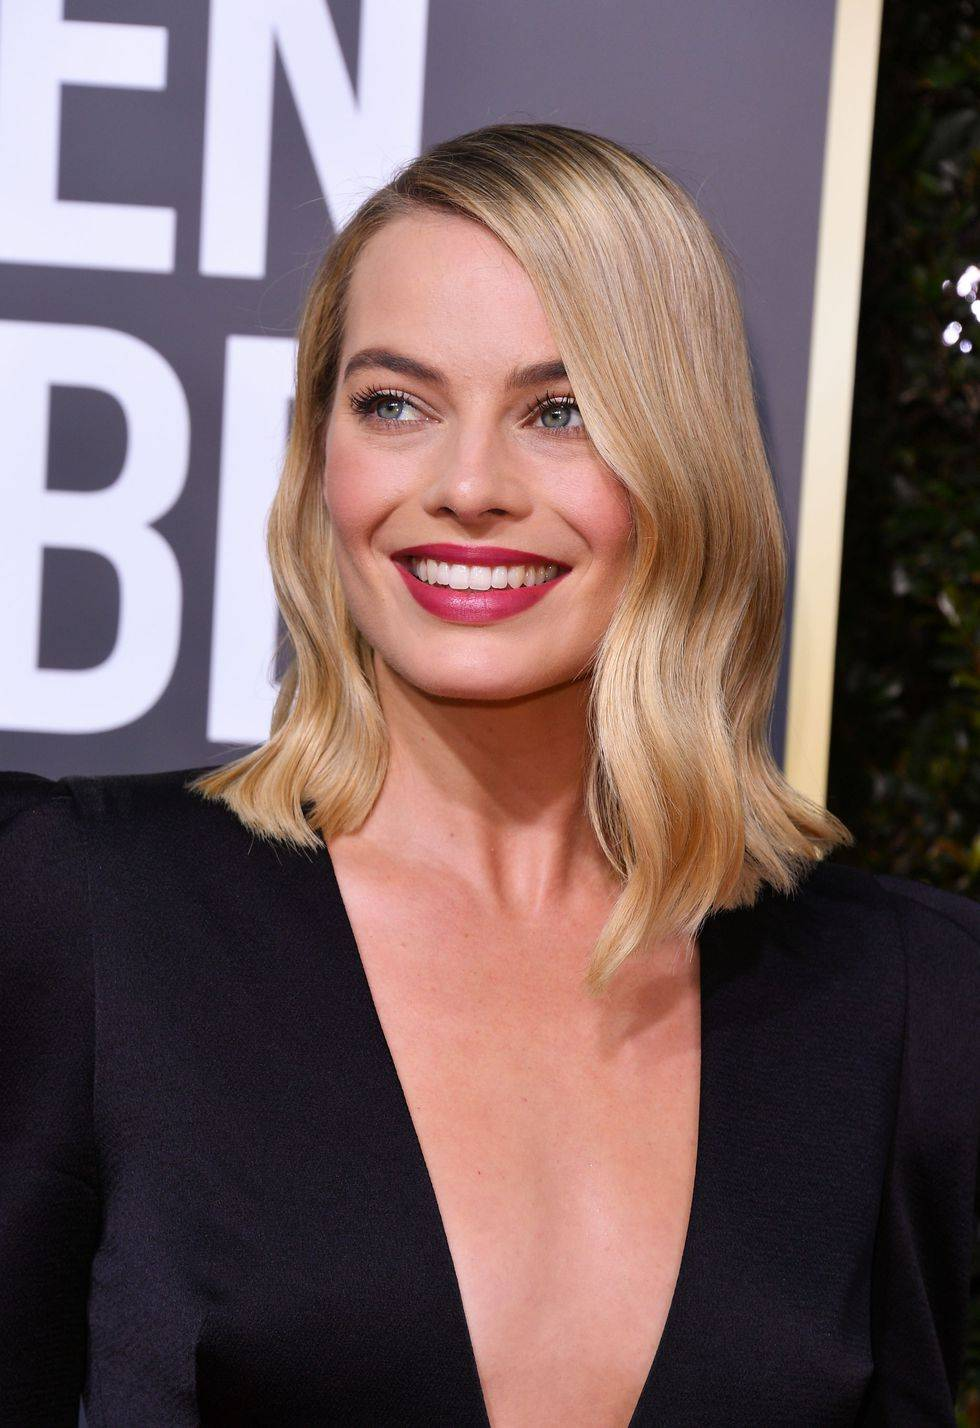 Margot Robbie with curly hair